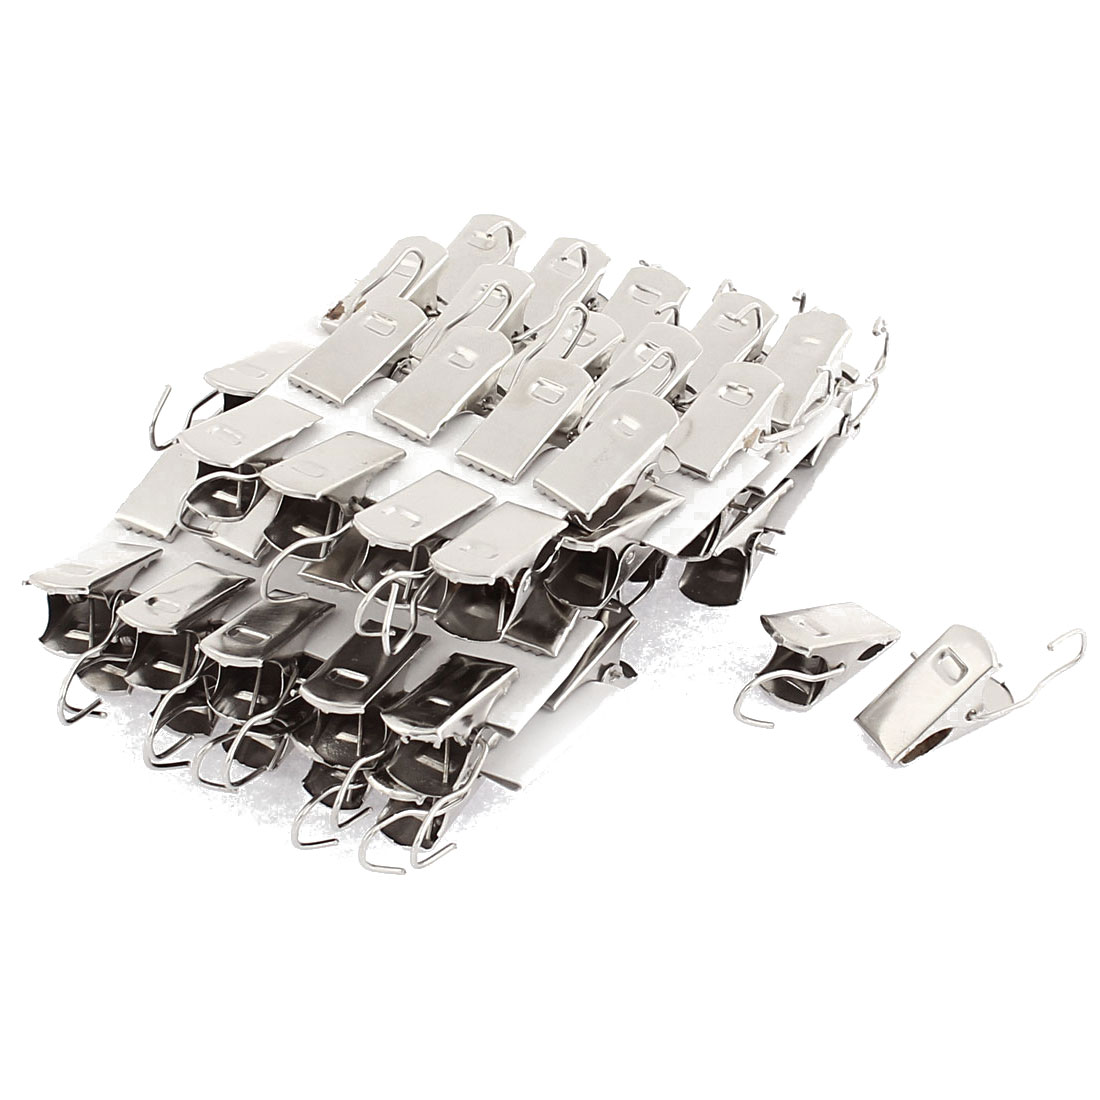 Home Window Shower Drapery Curtain Rod Metal Hook Clips Clamps 60 Pcs